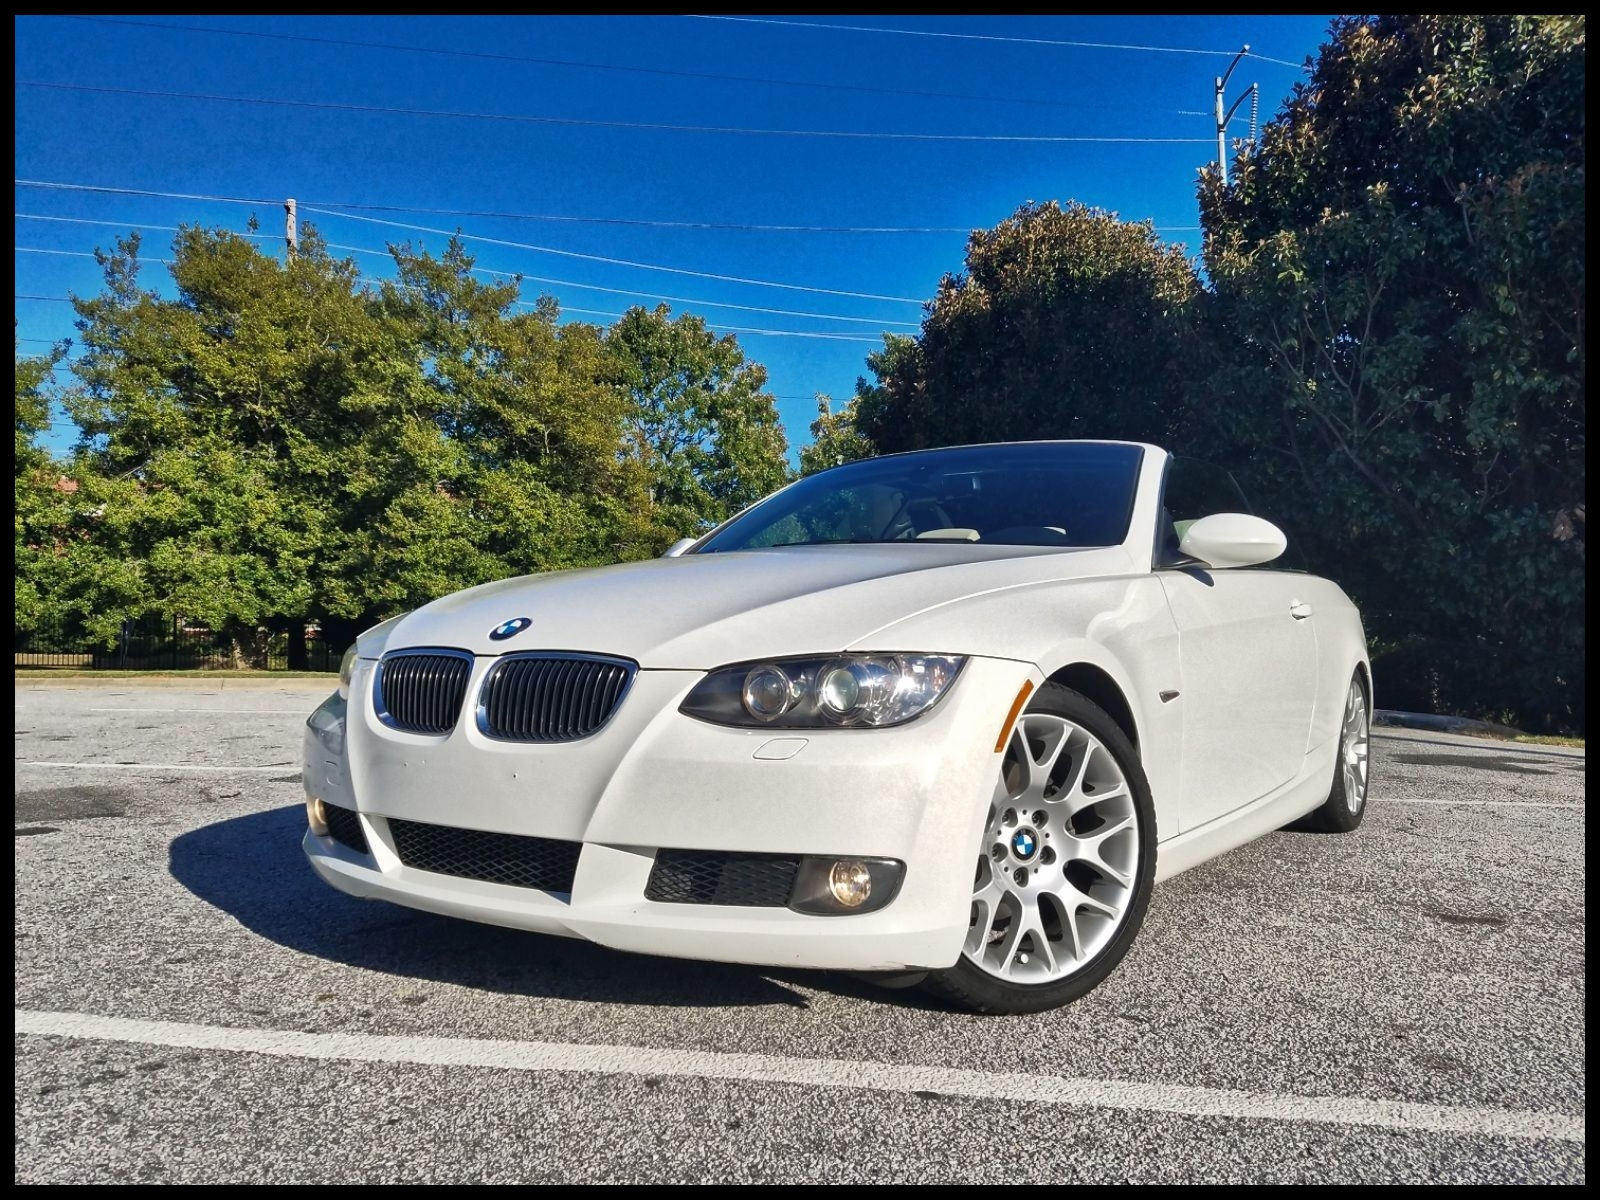 2008 Bmw 328i Bolt Pattern Awesome 2008 Bmw 3 Series Bmw 328i Hardtop Convertible with Extended